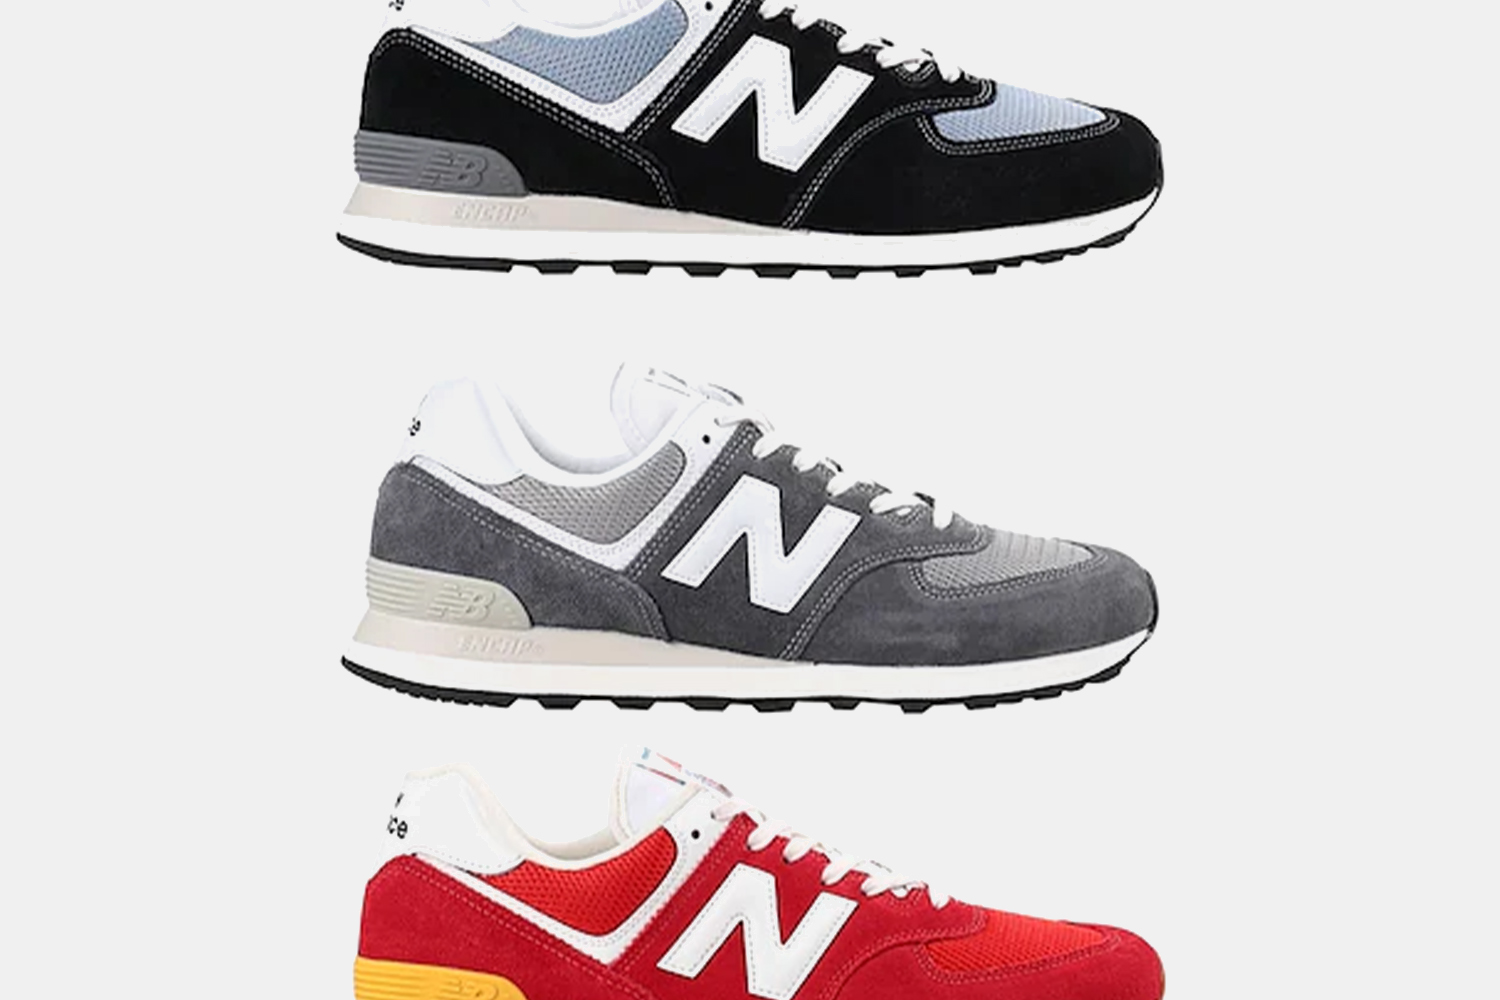 New Balance's 574 Sneakers Are 26% Off at Yoox - InsideHook